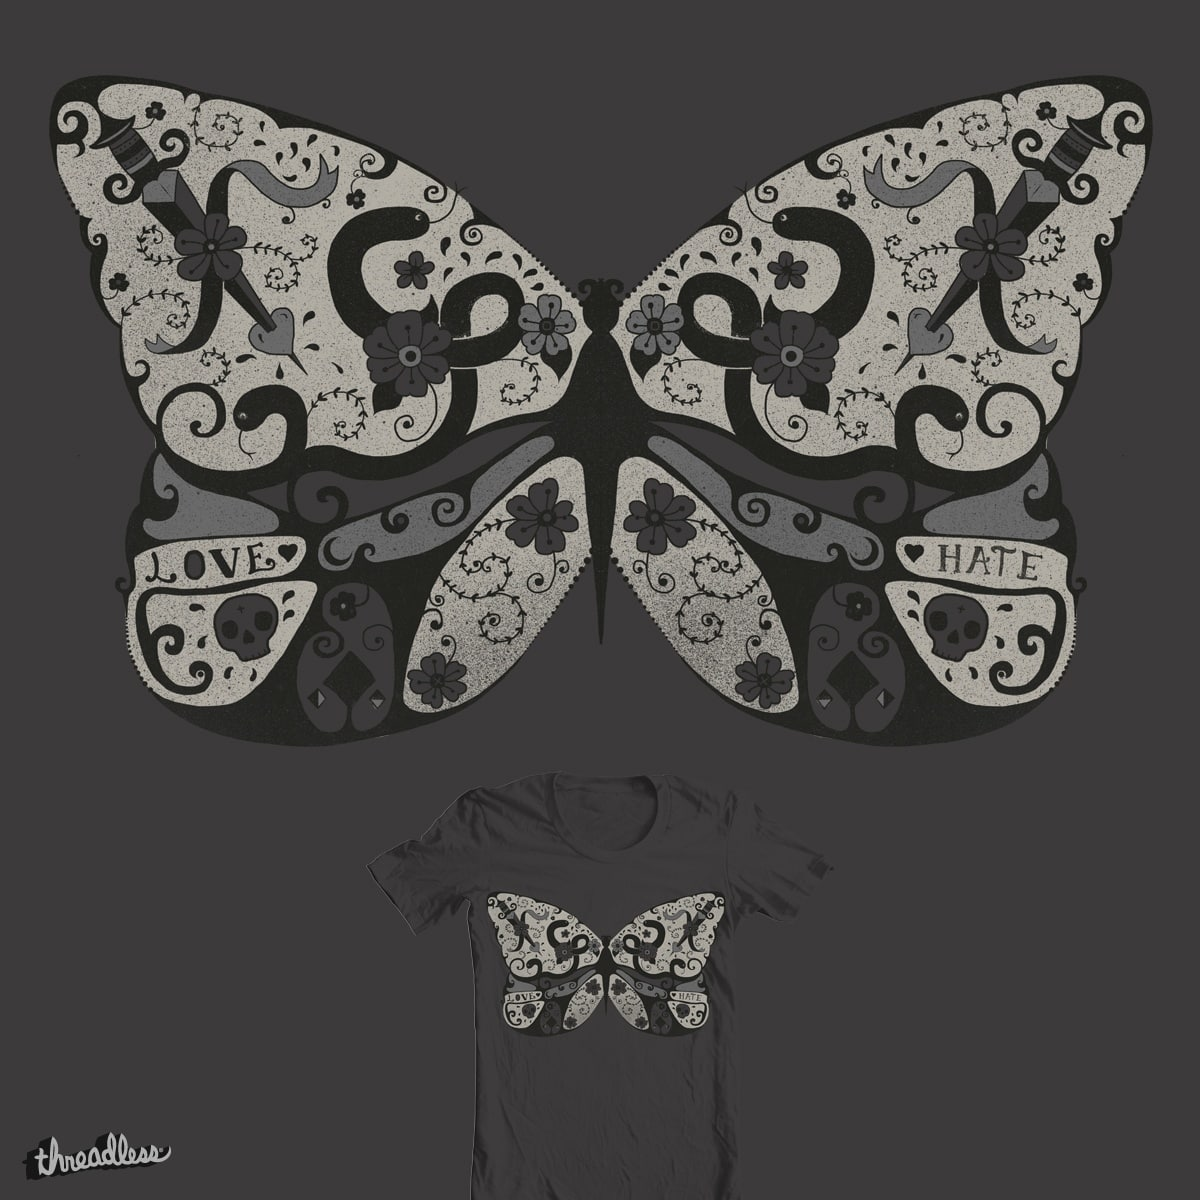 Polymorphism by Farnell on Threadless